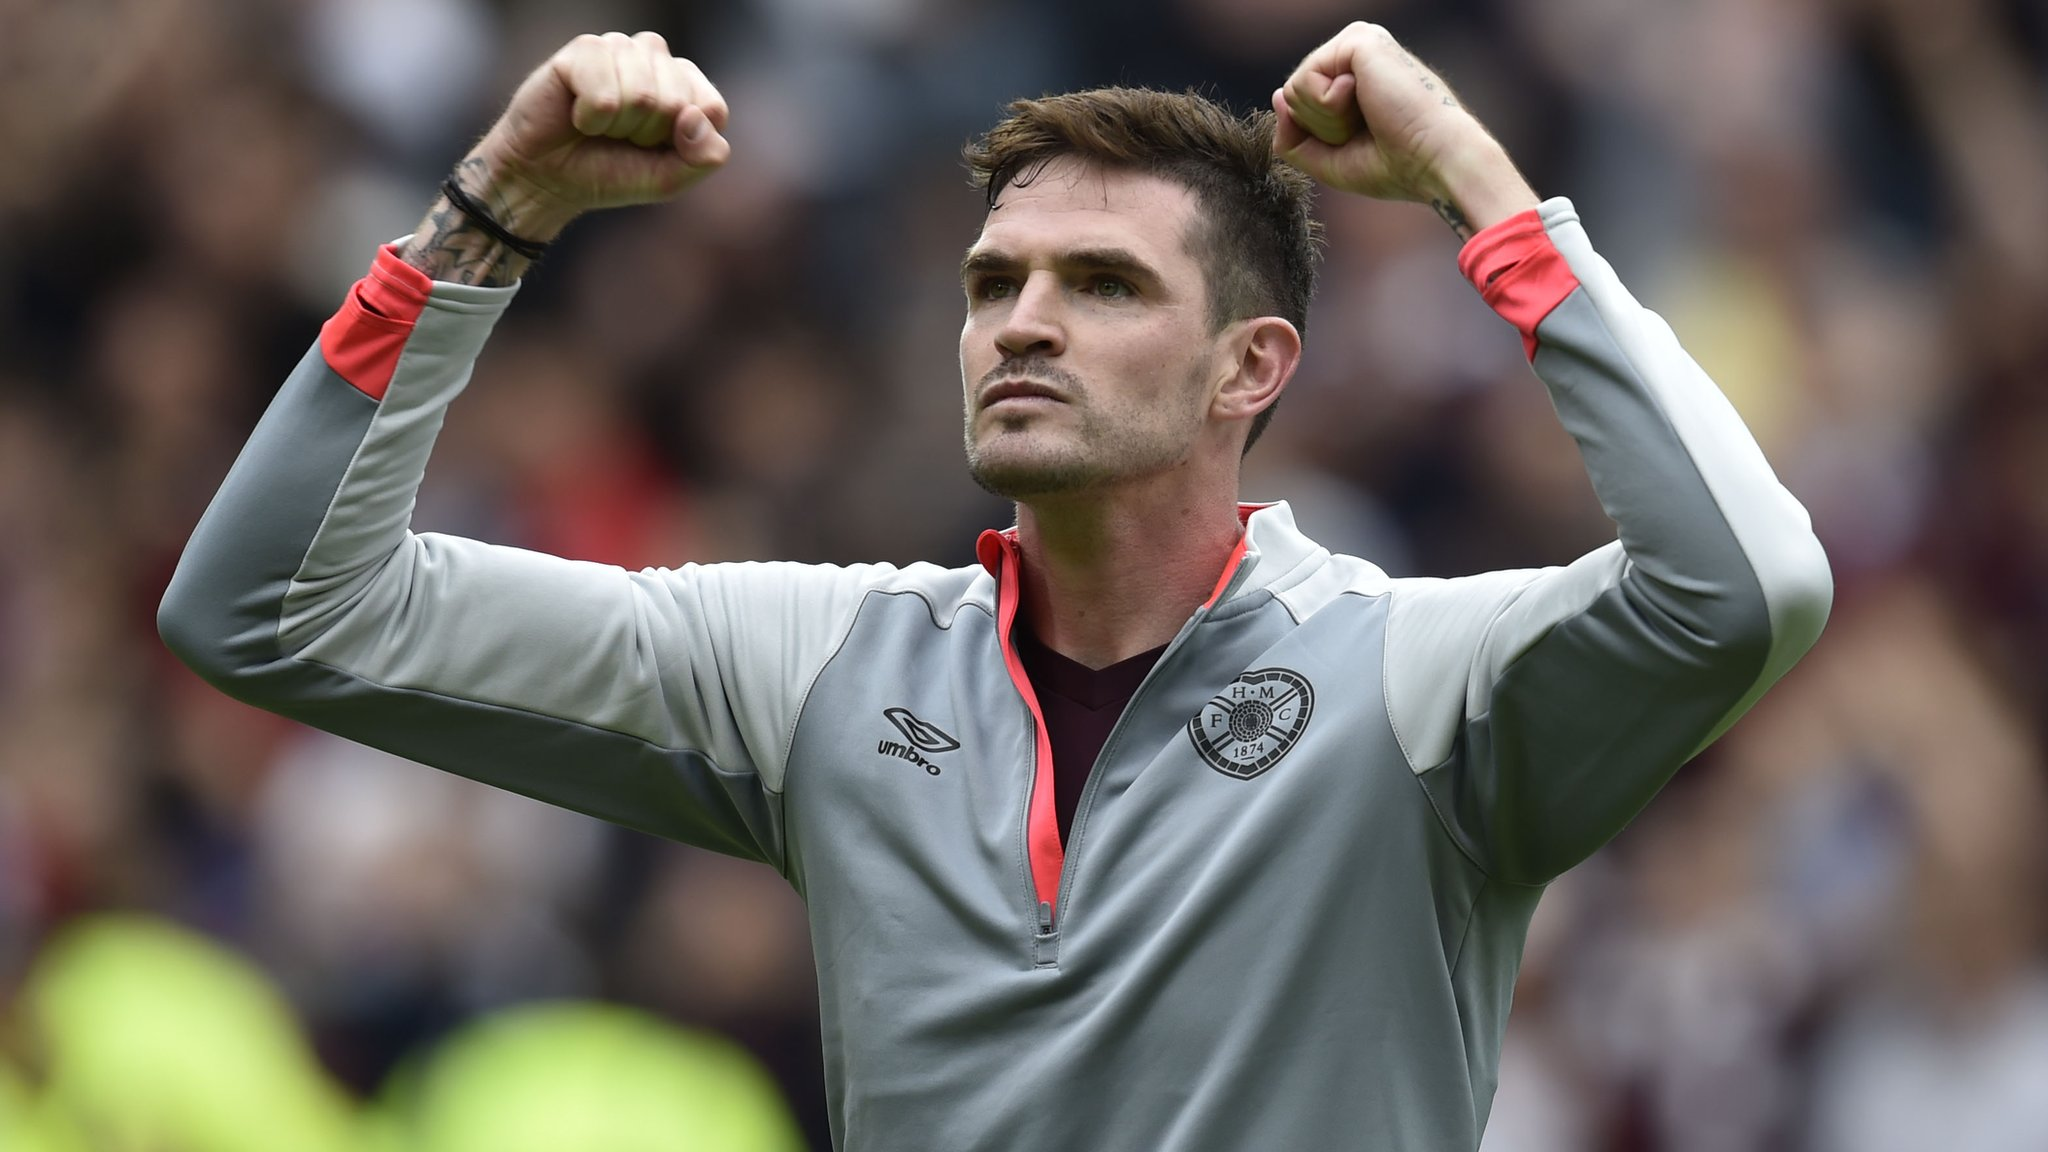 'My future is up to Hearts & Rangers' - Lafferty